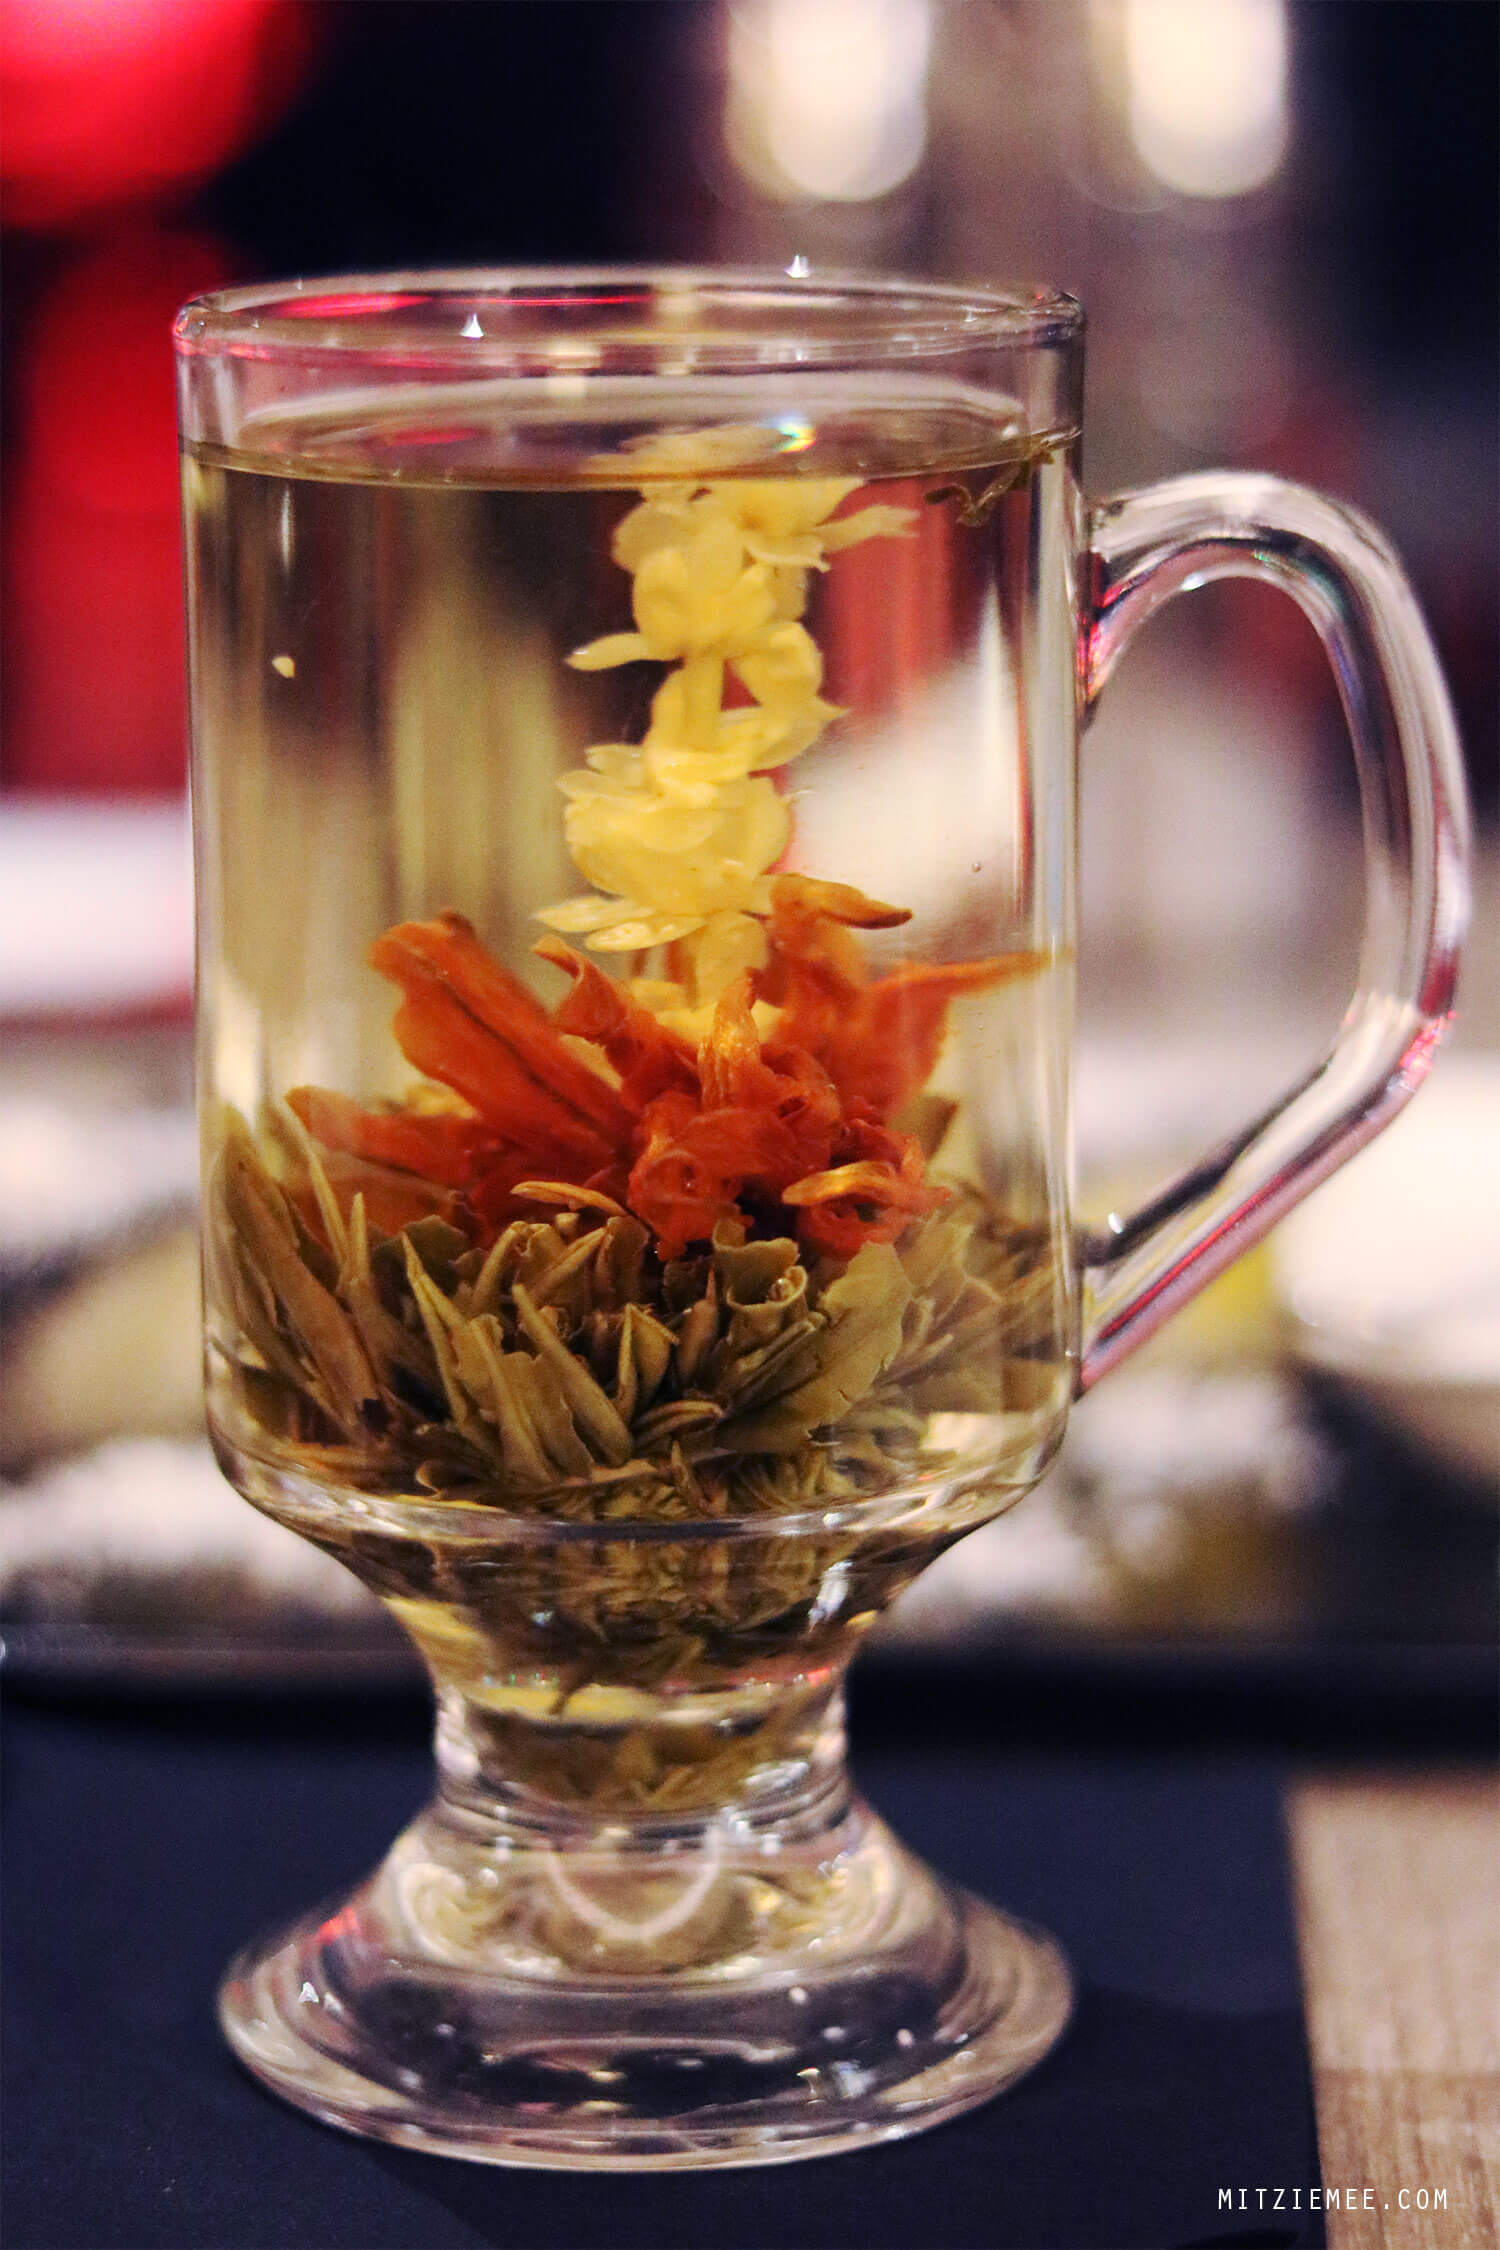 Blooming Lotus Tea, Nara restaurant in JLT